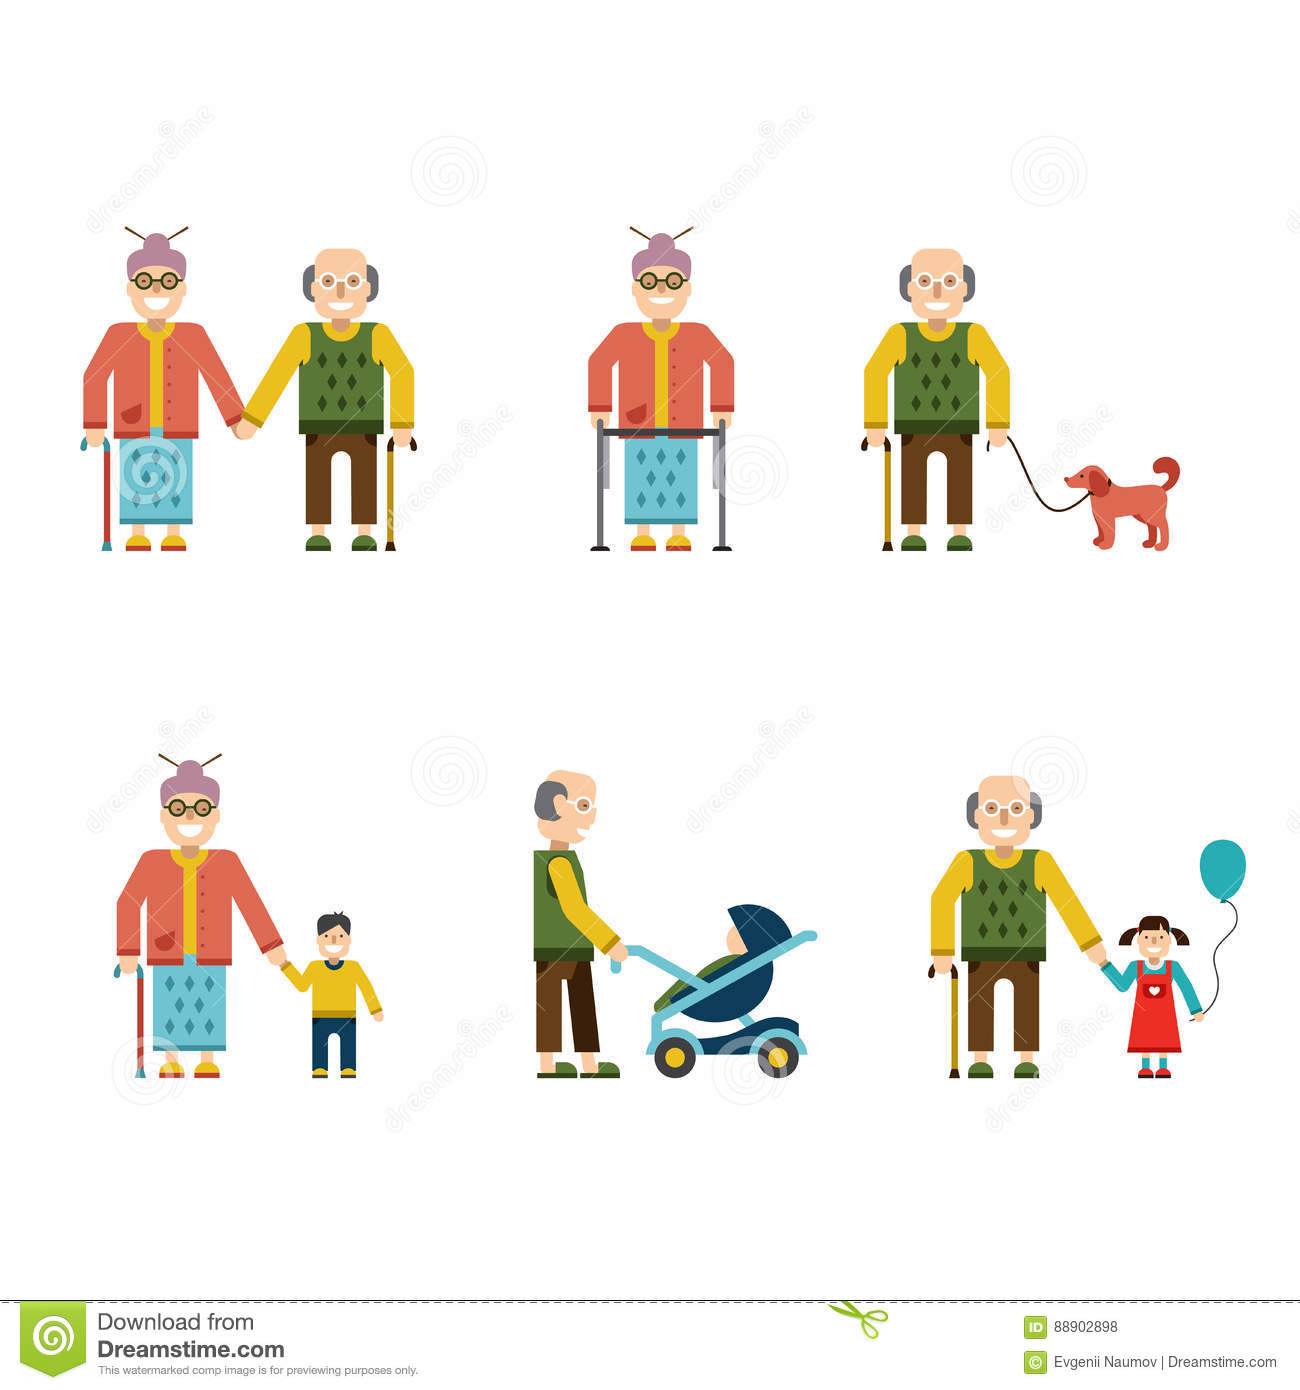 Merveilleux Older People In Different Situations Isolated Vector Illustration. Birds,  Geriatrics.